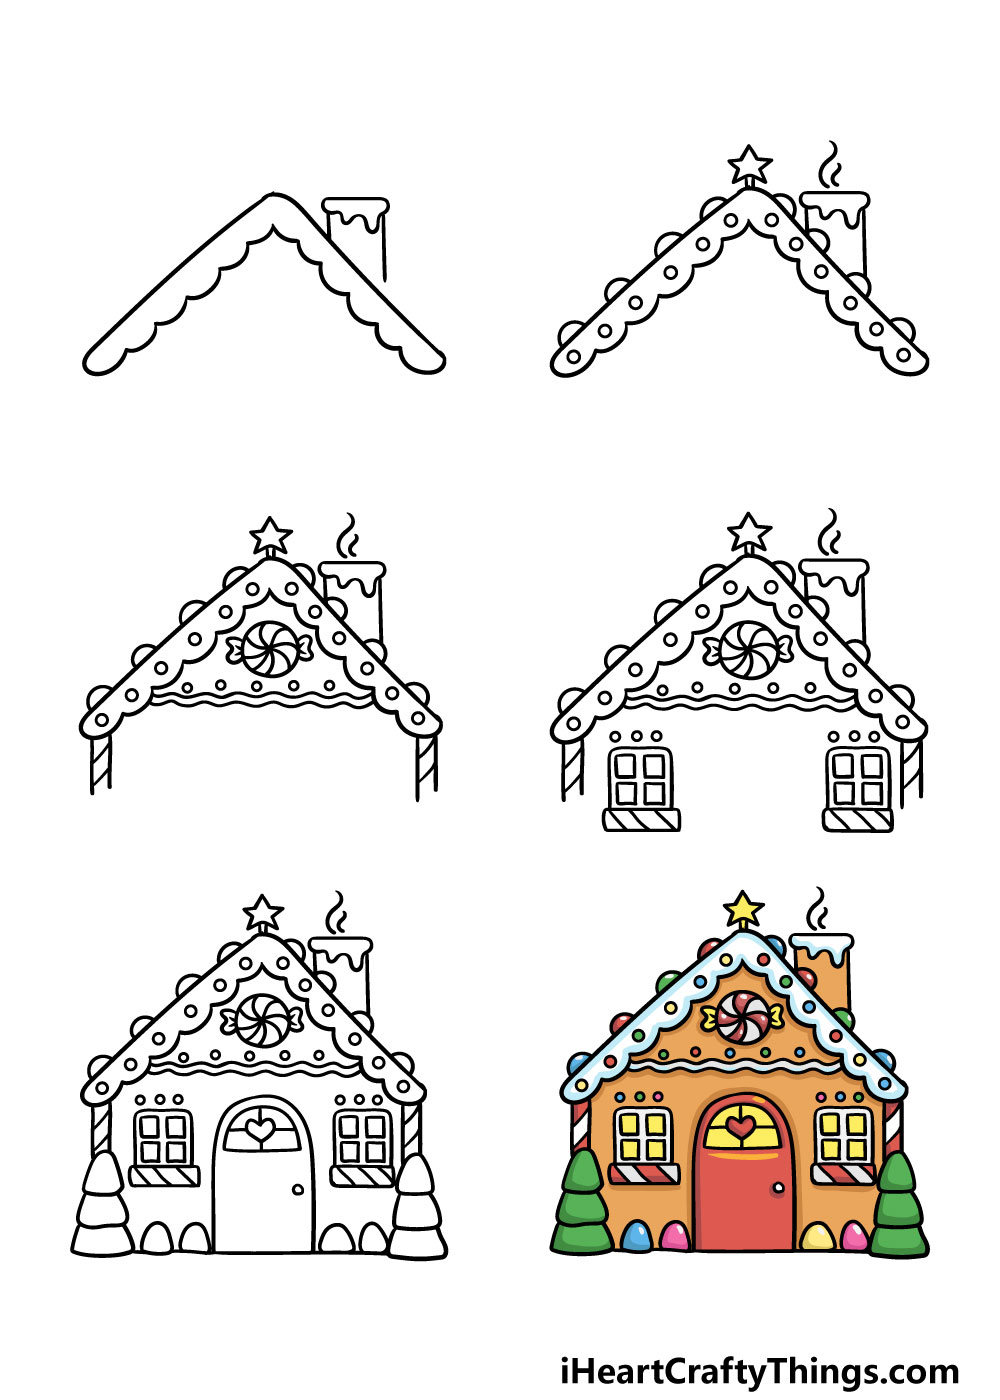 how to draw gingerbread house in 6 steps